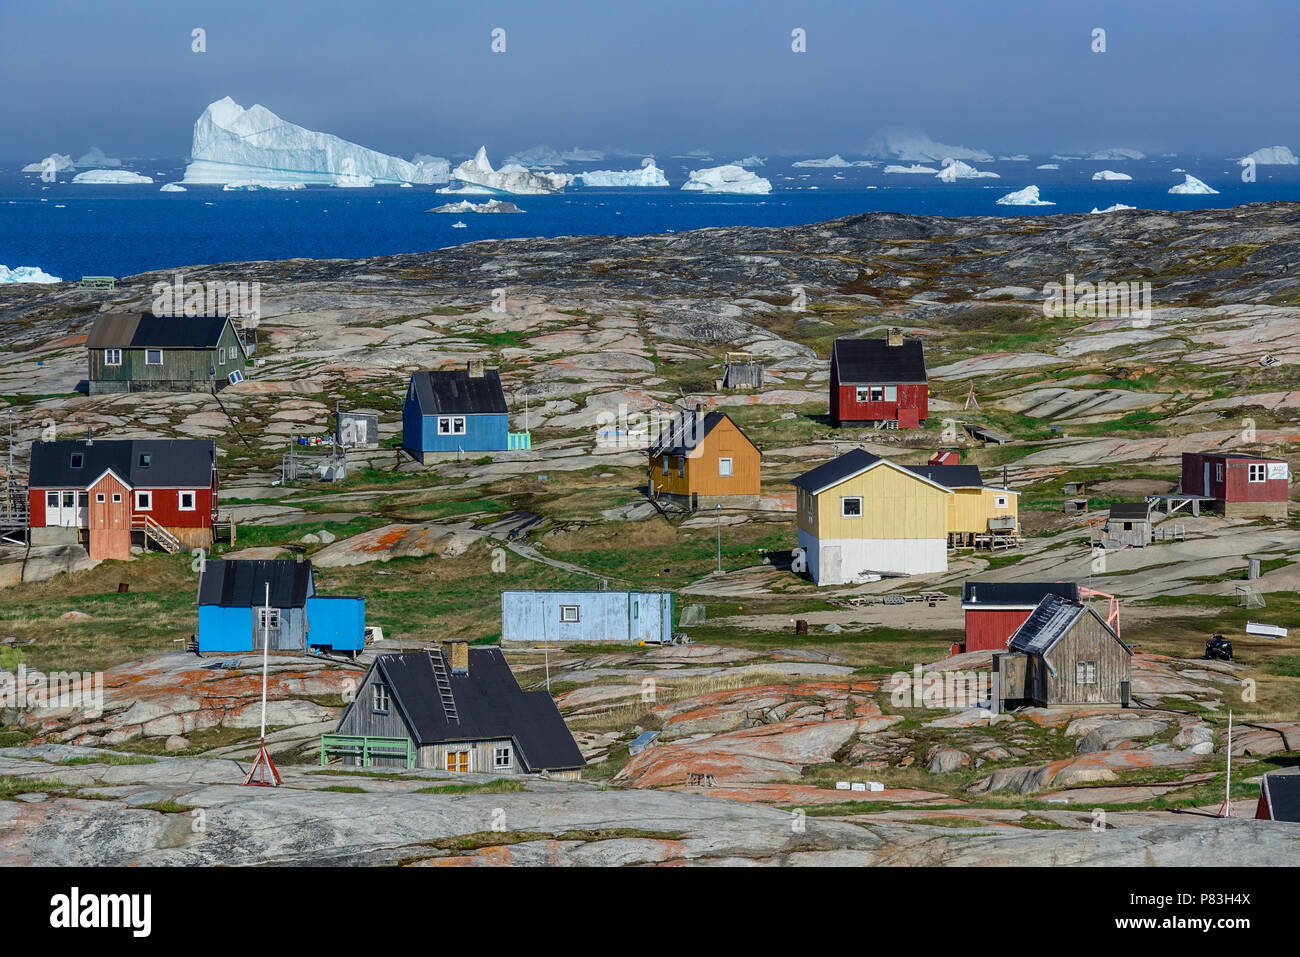 23.06.2018, Gronland, Denmark: Colorful houses about 30 kilometers north of the coastal town of Ilulissat in western Greenland. Photo: Patrick Pleul/dpa-Zentralbild/ZB | usage worldwide - Stock Image